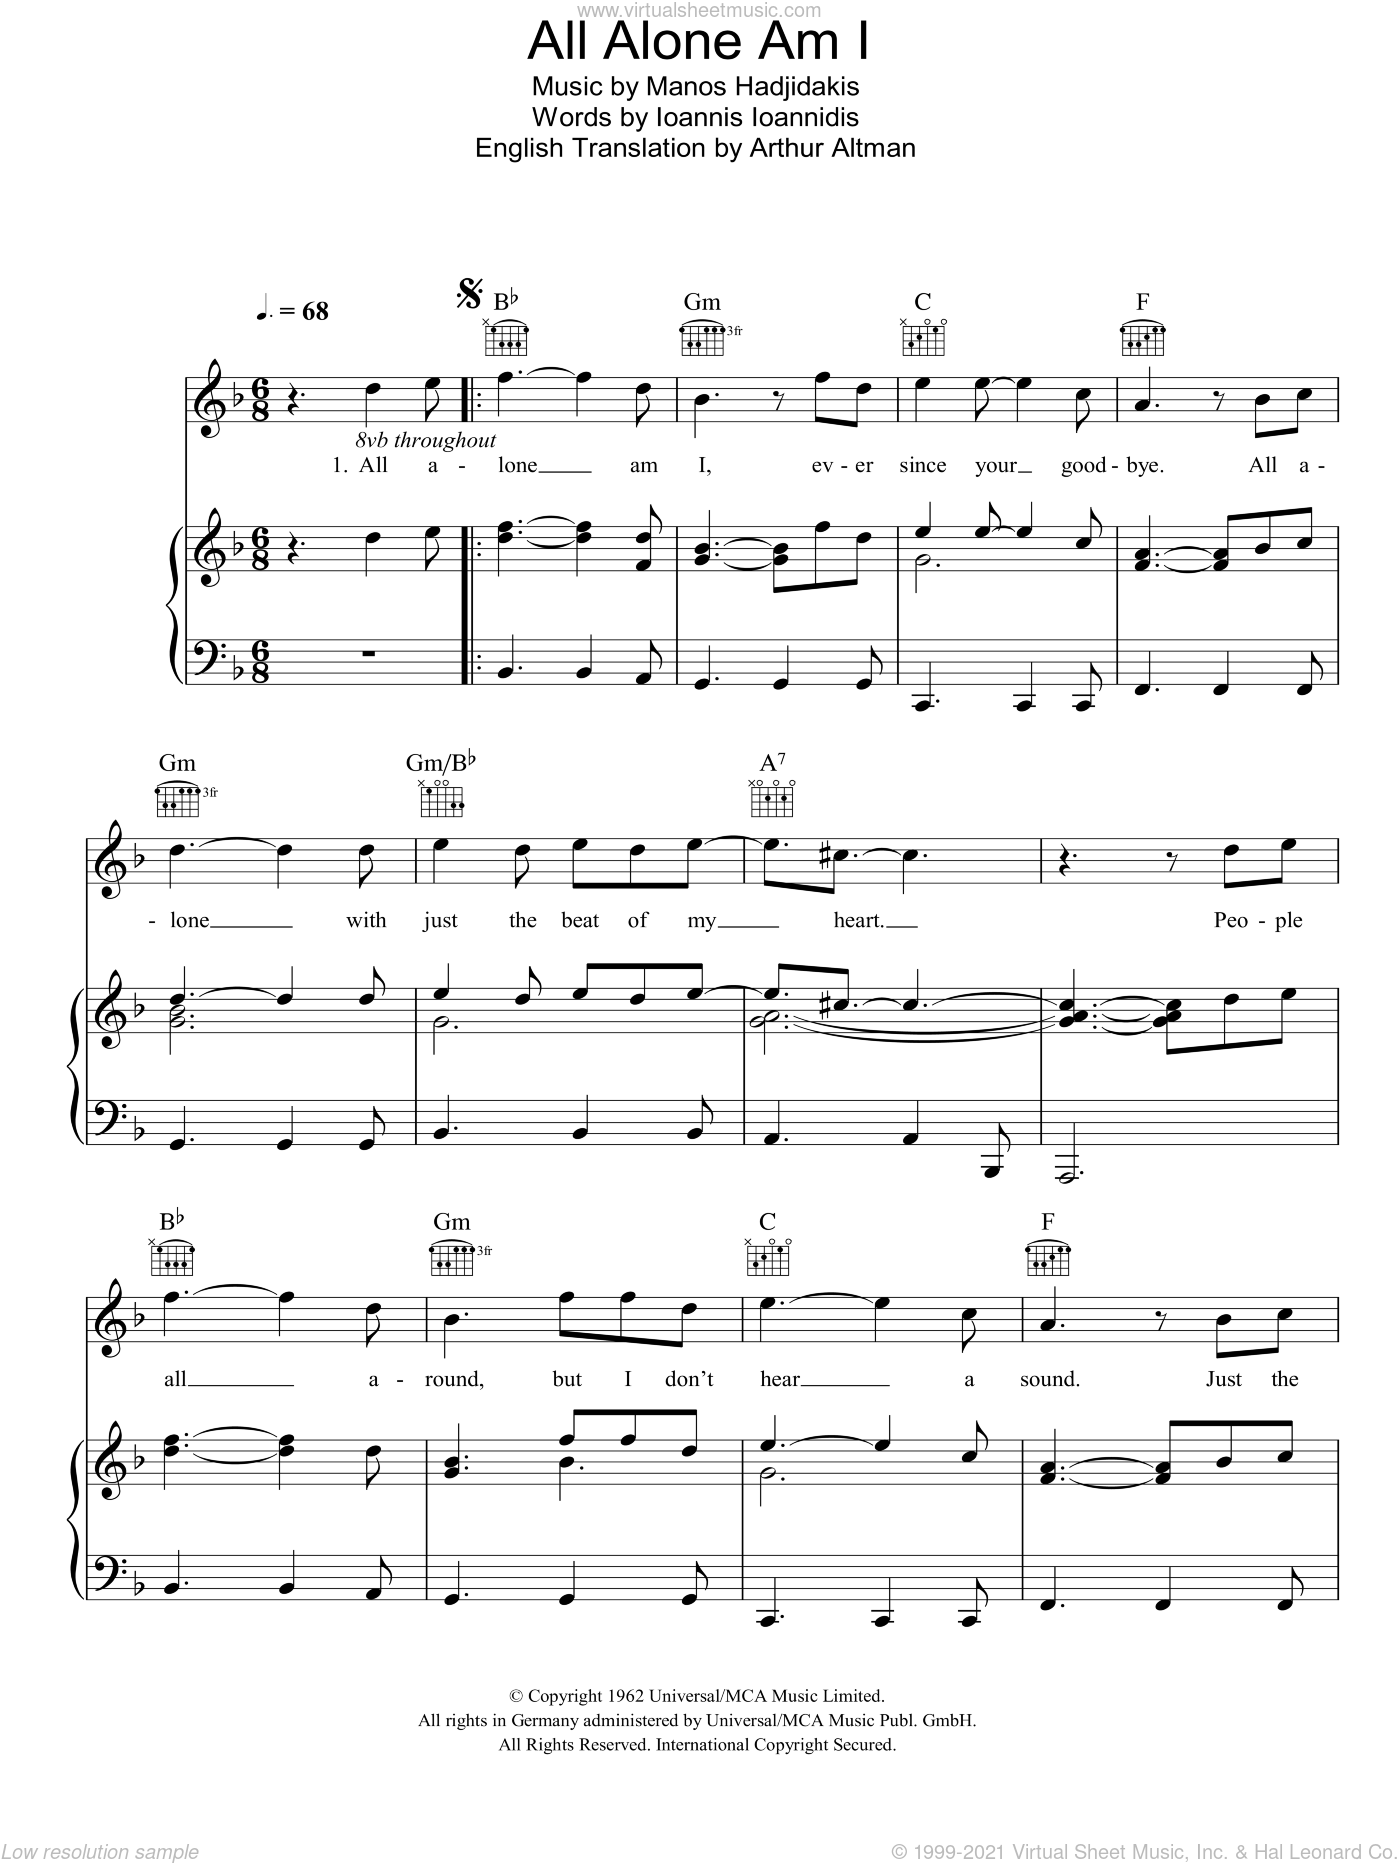 All Alone Am I sheet music for voice, piano or guitar by Manos Hadjidakis, Brenda Lee and Arthur Altman. Score Image Preview.